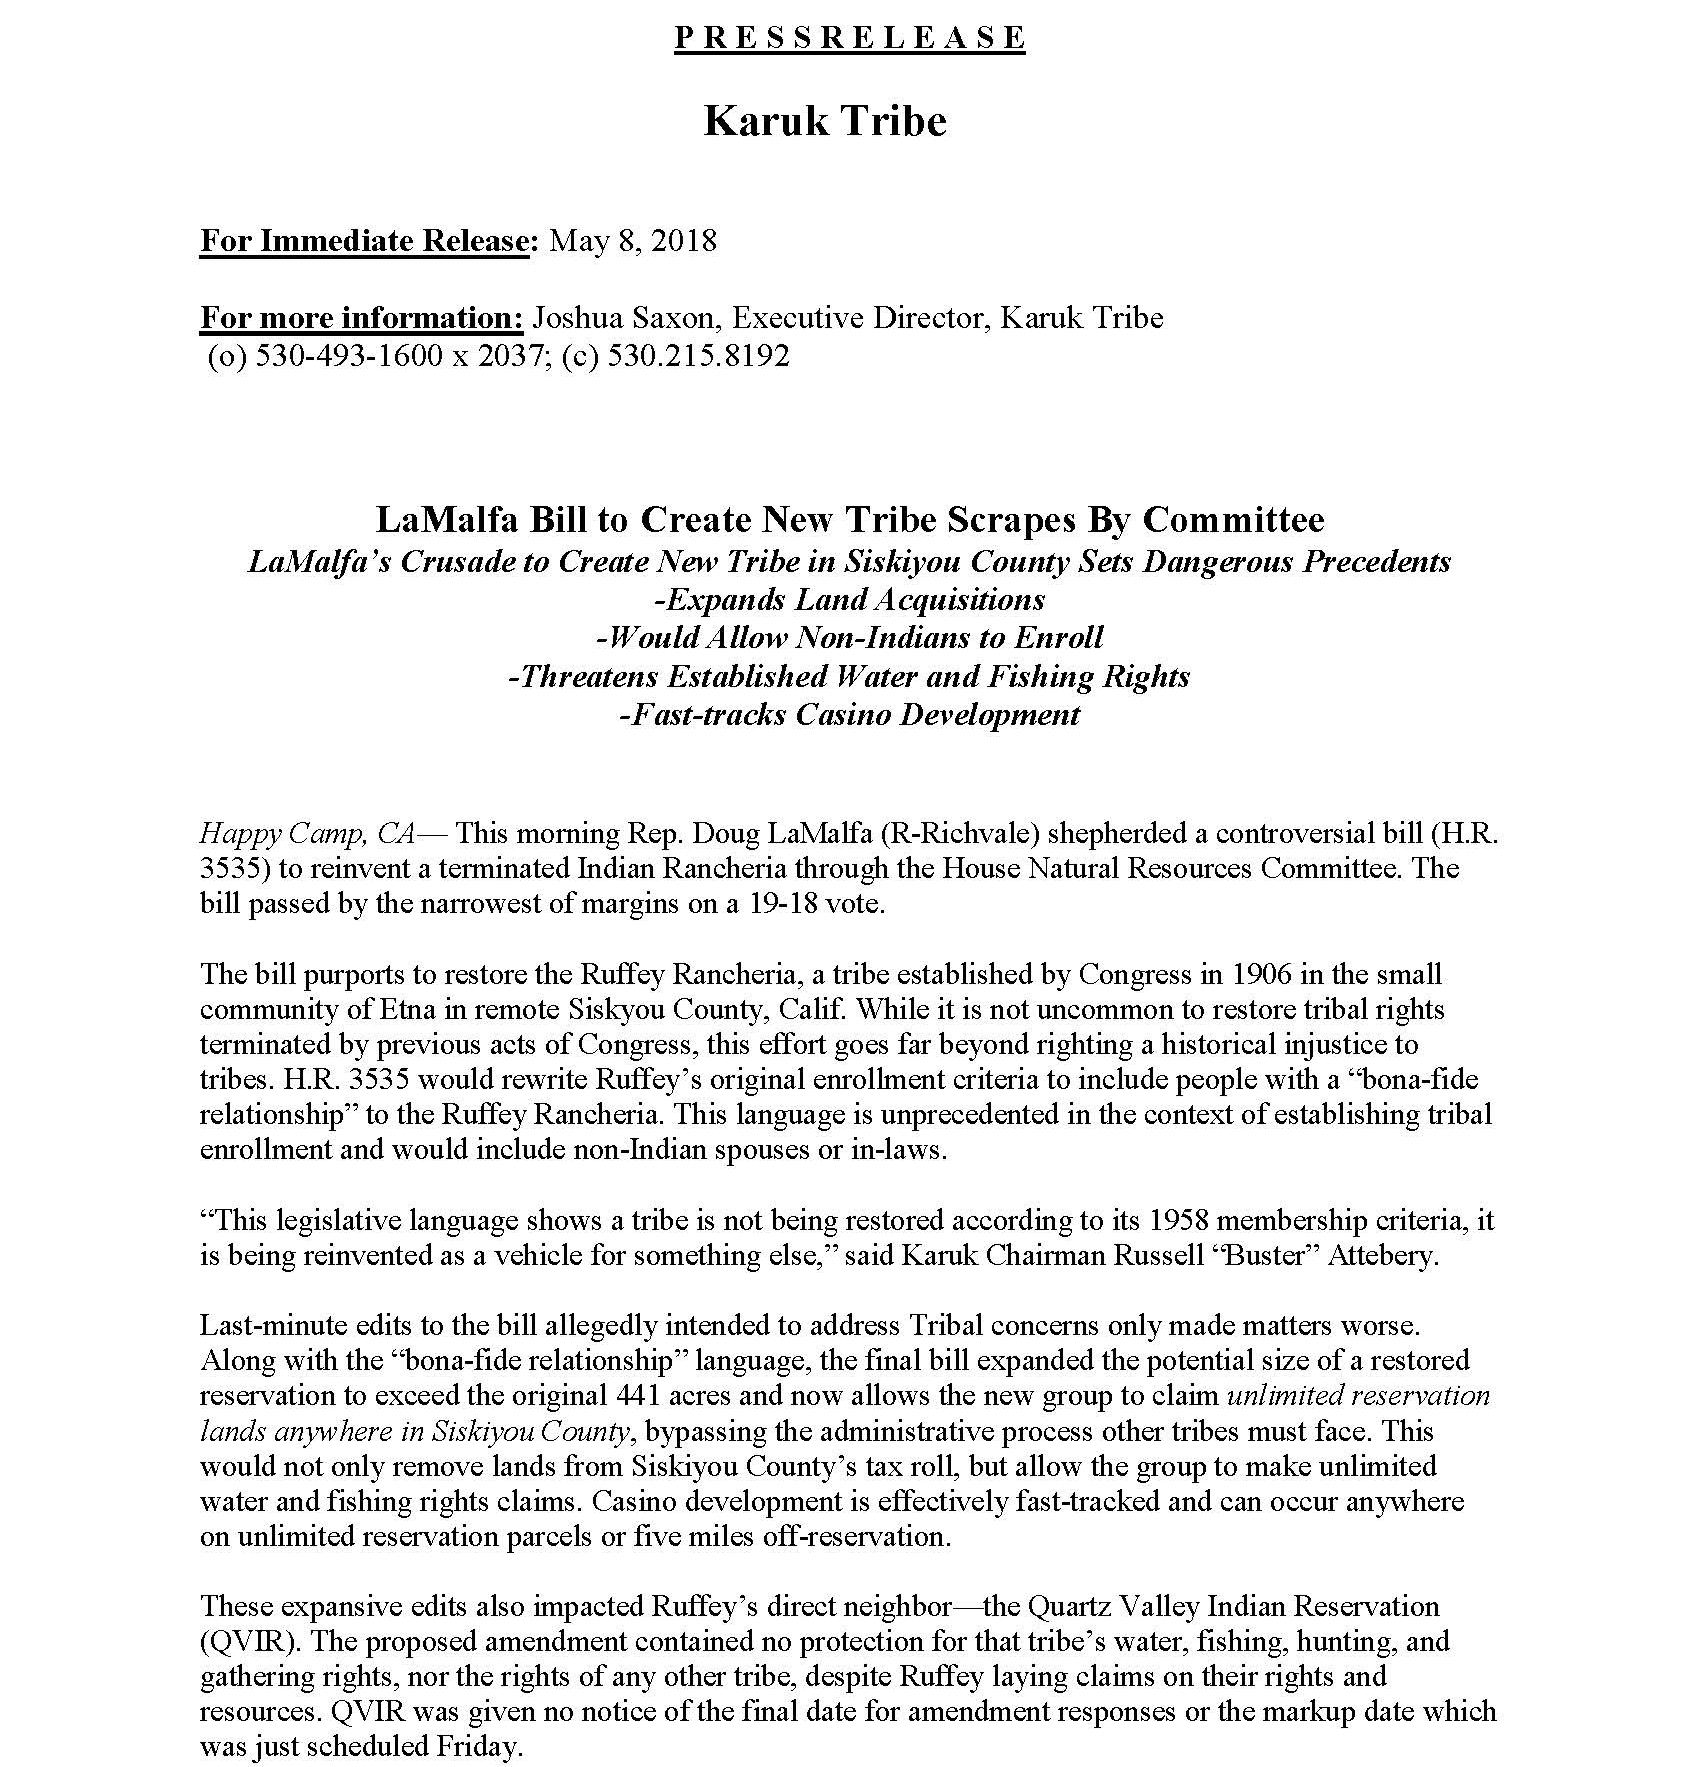 LaMalfa Final Press Release Page 1